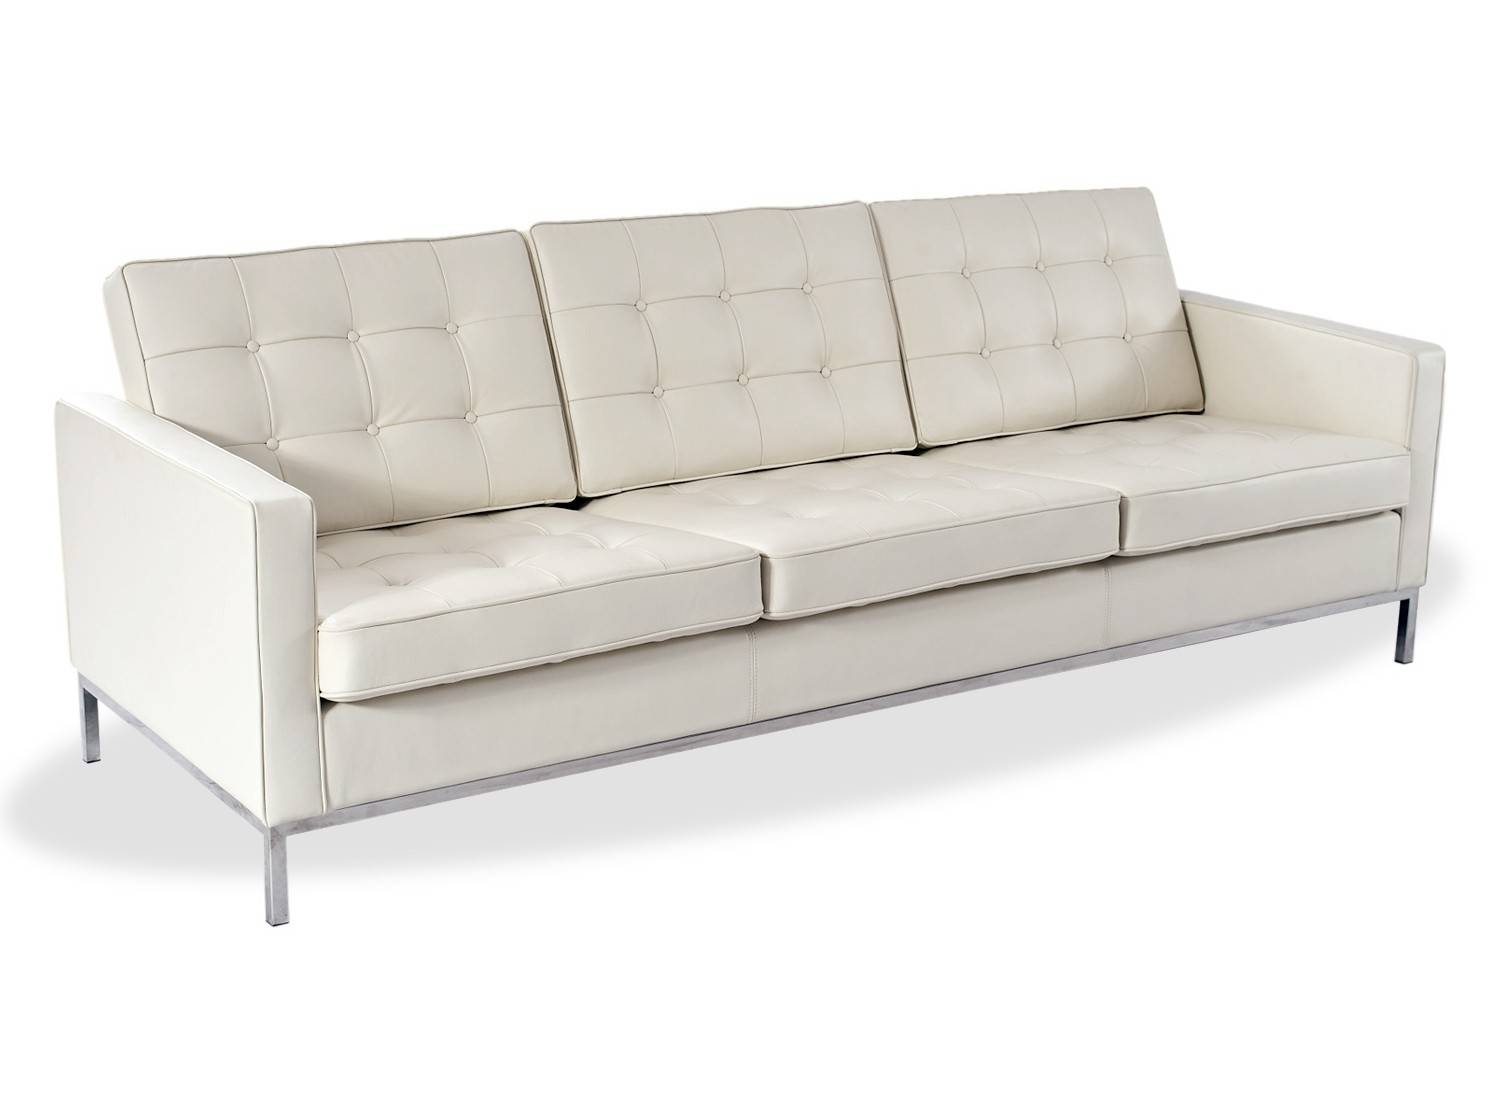 Florence Knoll Sofa 3 Seater Leather (Replica)-Aniline Leather-005 inside Florence Knoll 3 Seater Sofas (Image 18 of 30)